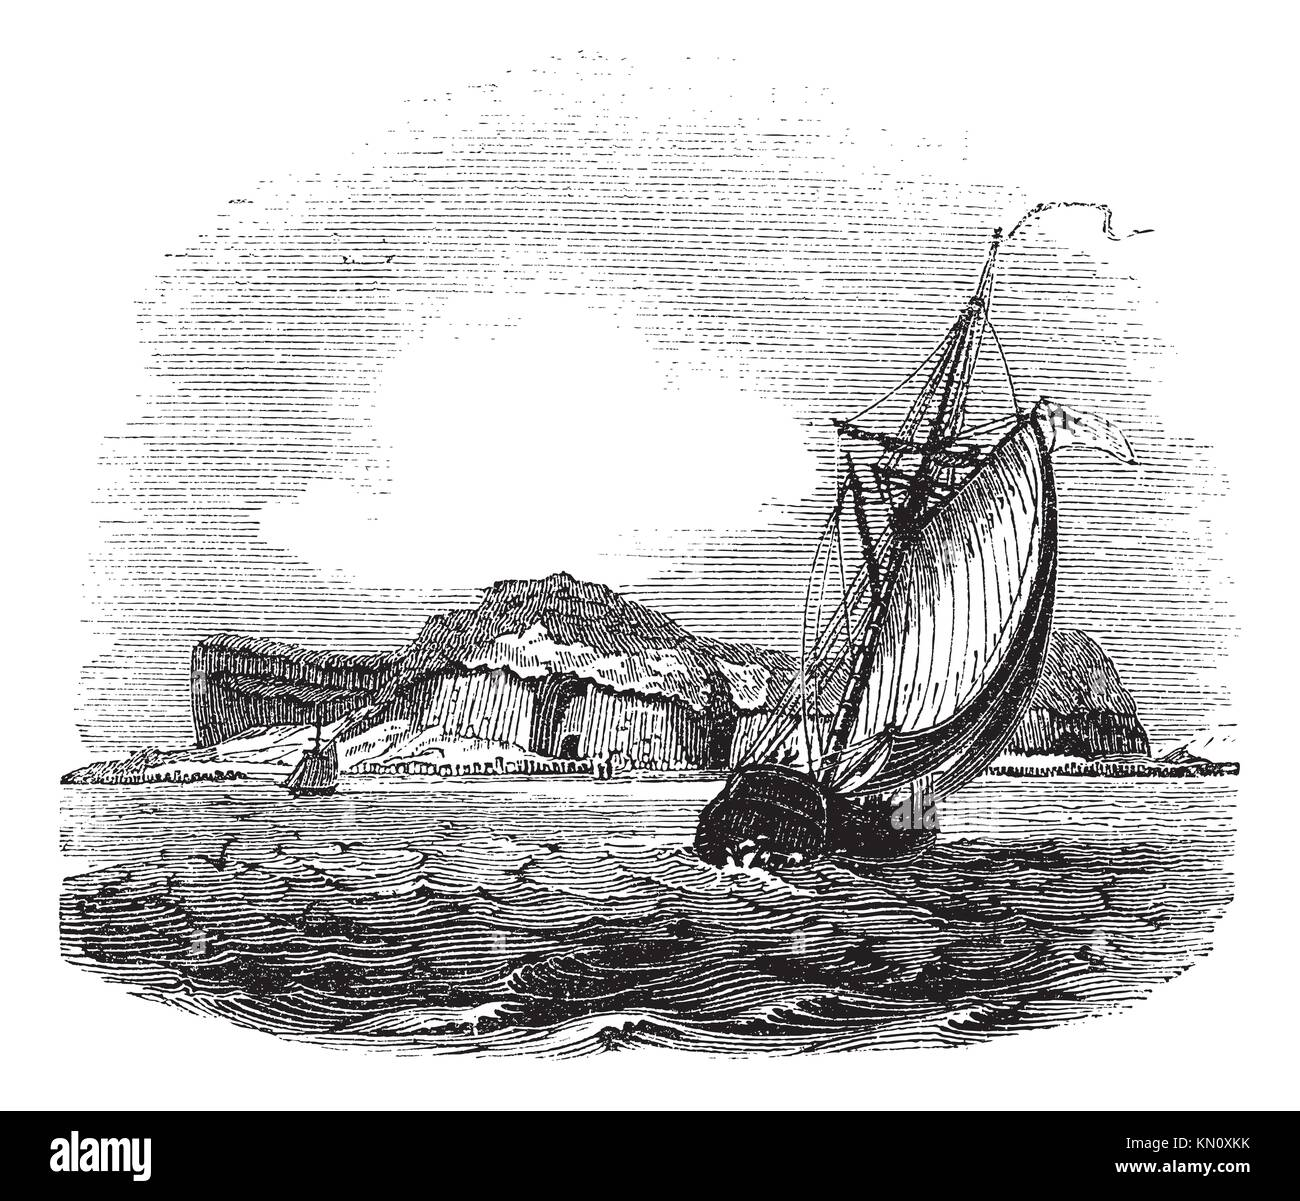 Staffa in Argyll and Bute, Scotland, during the 1890s, vintage engraving  Old engraved illustration of Staffa with Stock Photo